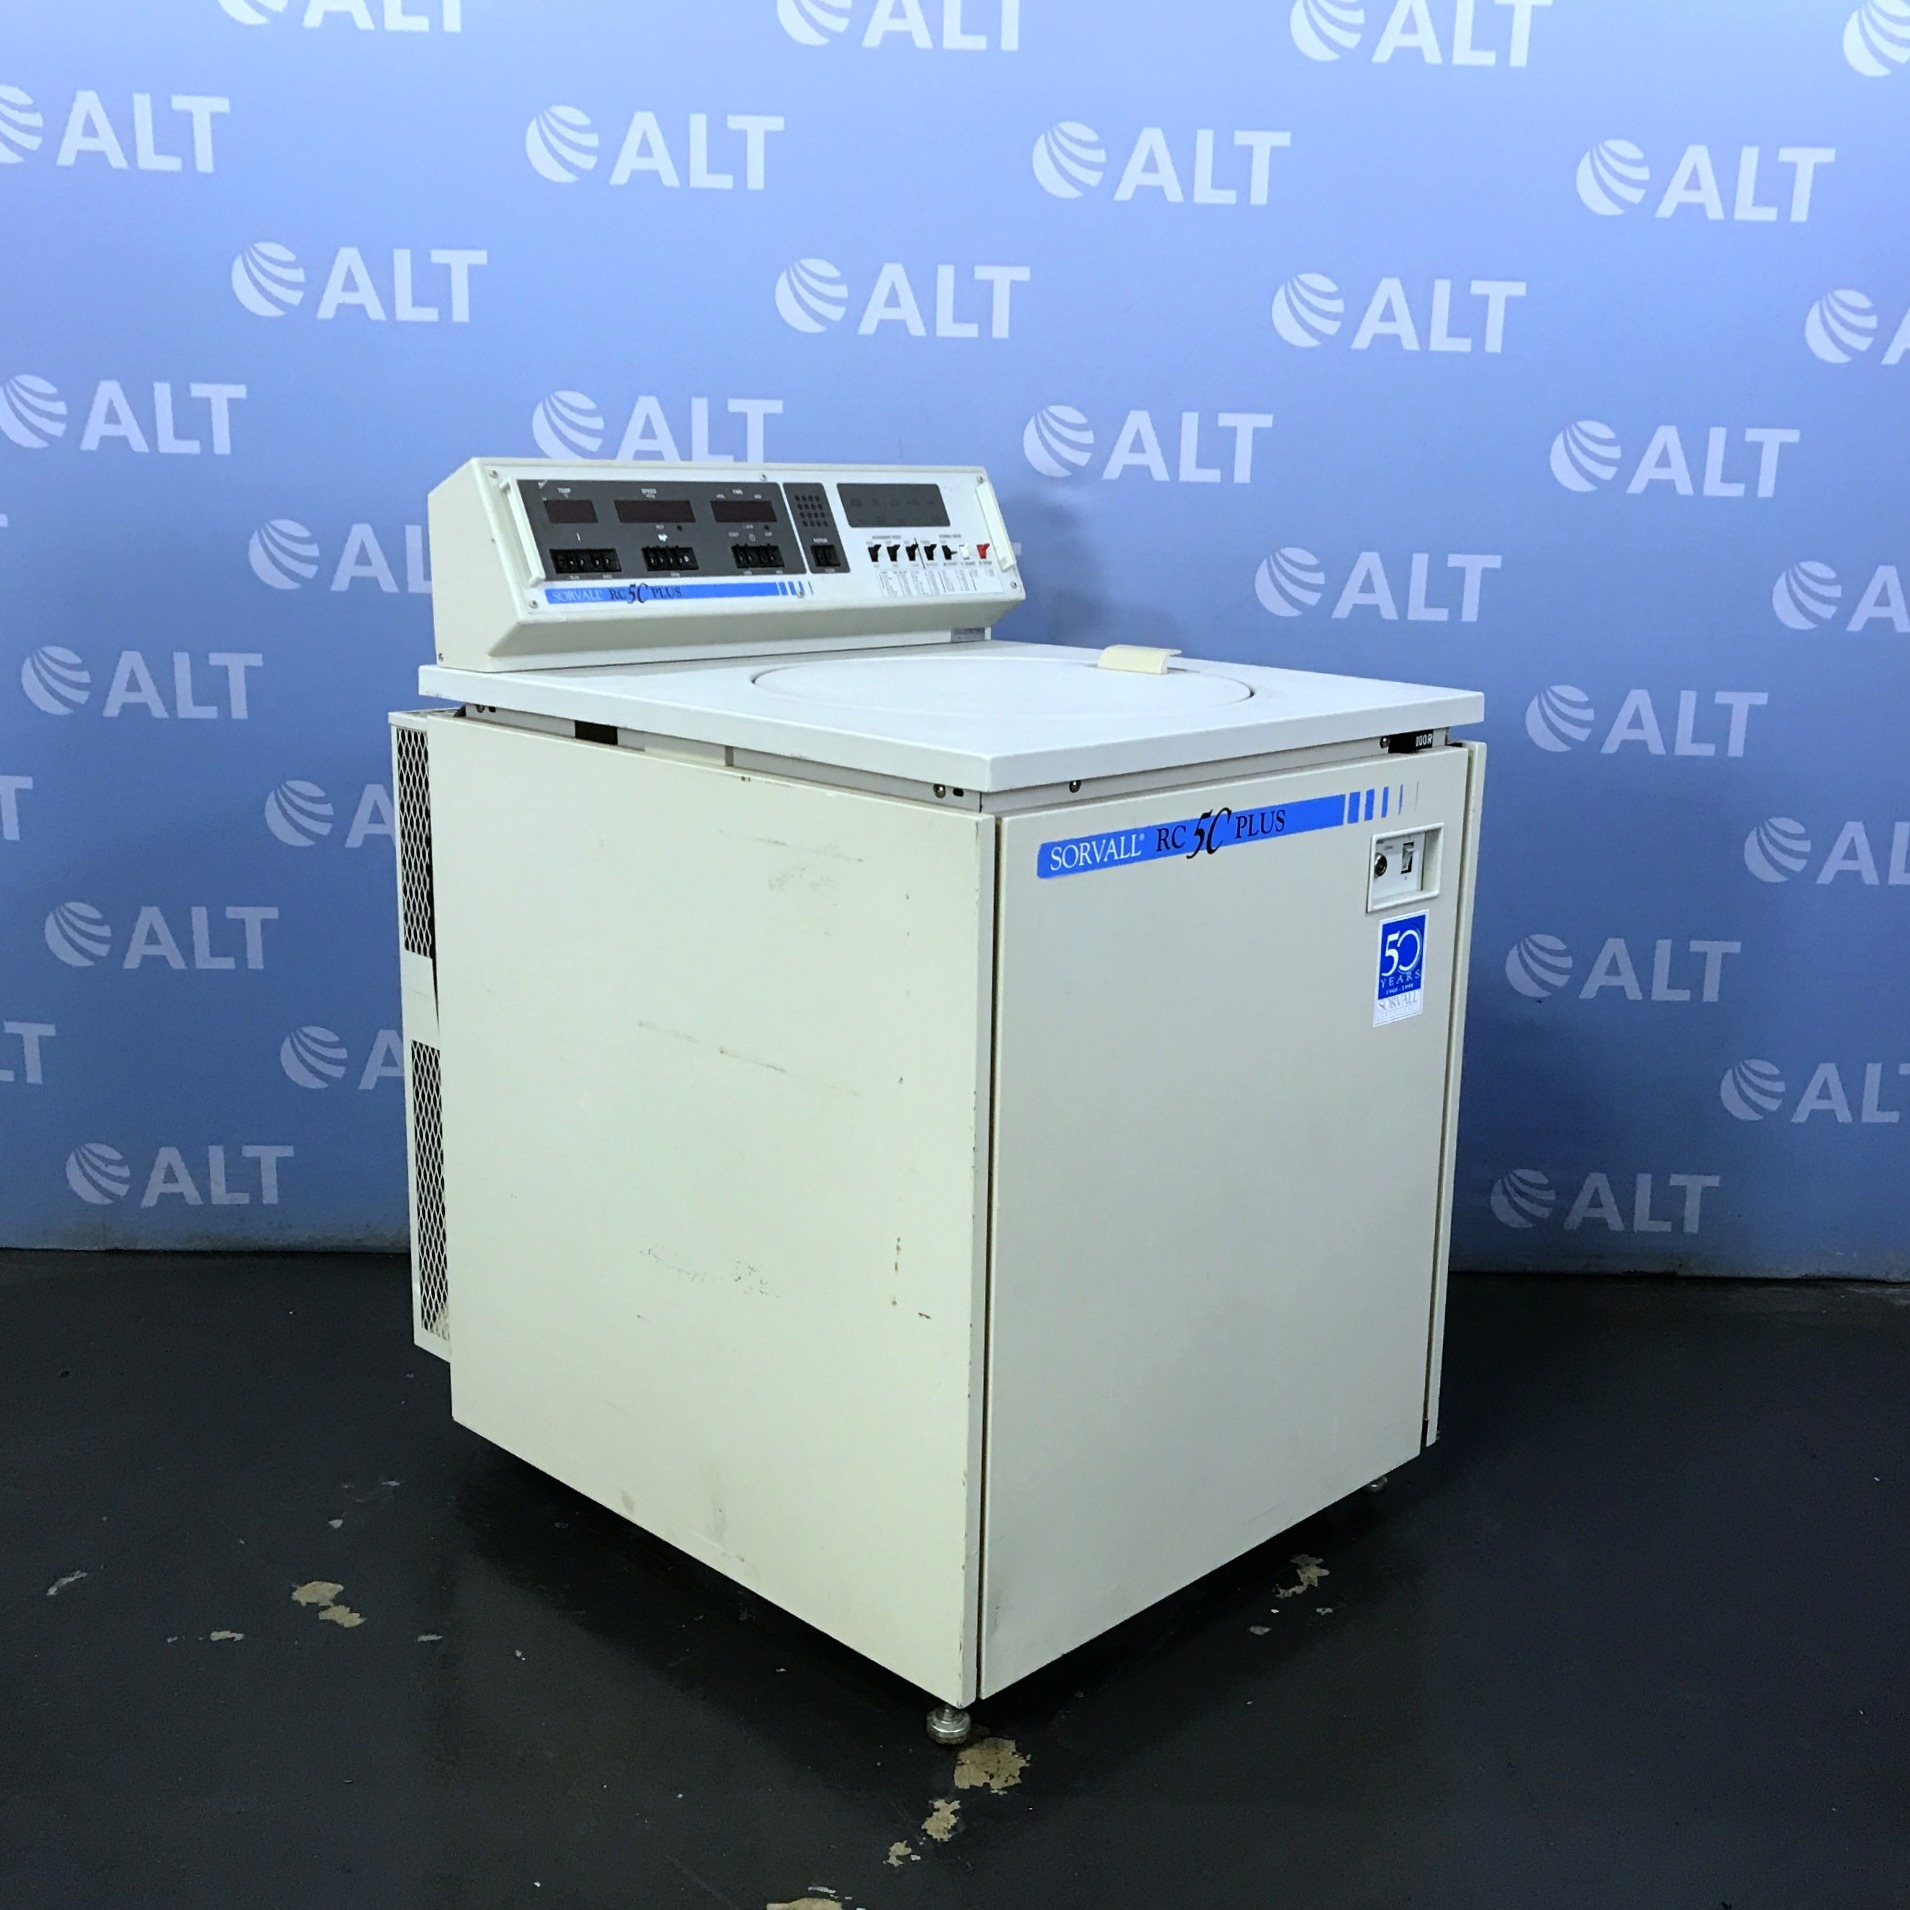 Sorvall RC-5C Plus Refrigerated Superspeed Centrifuge Image